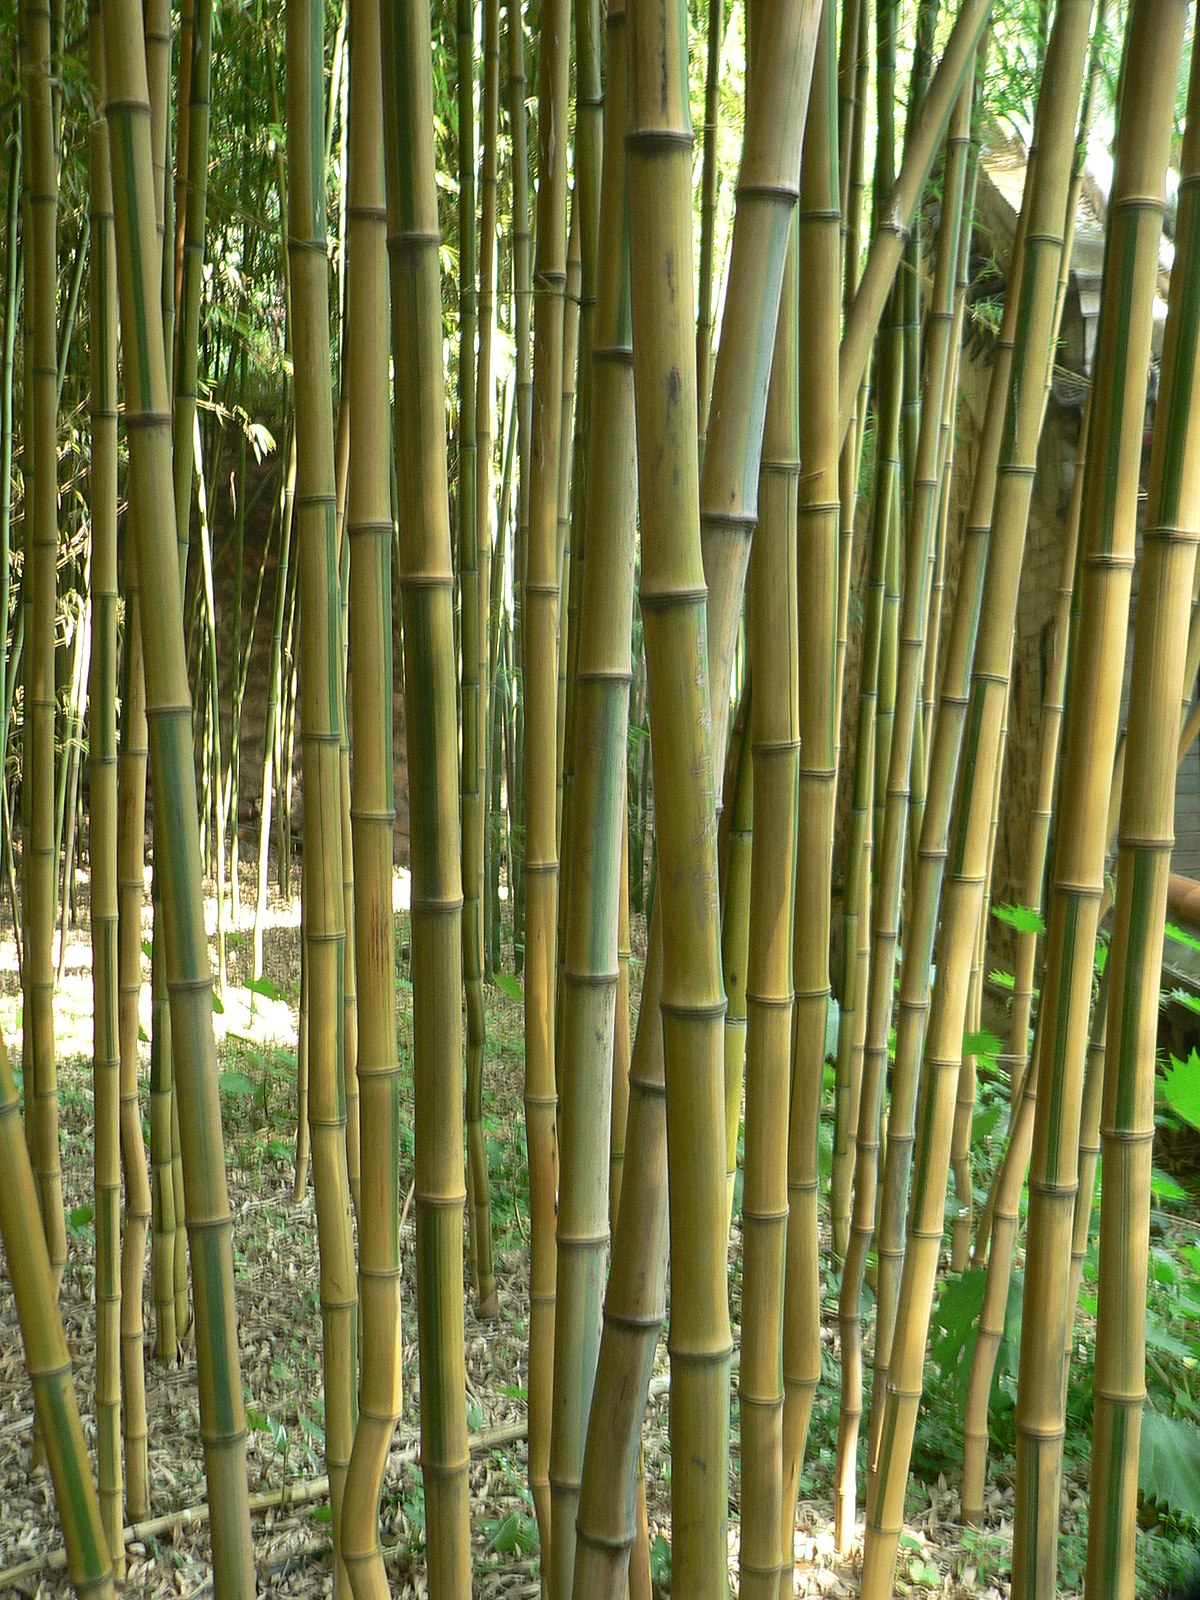 phyllostachys aureosulcata wikipedia. Black Bedroom Furniture Sets. Home Design Ideas